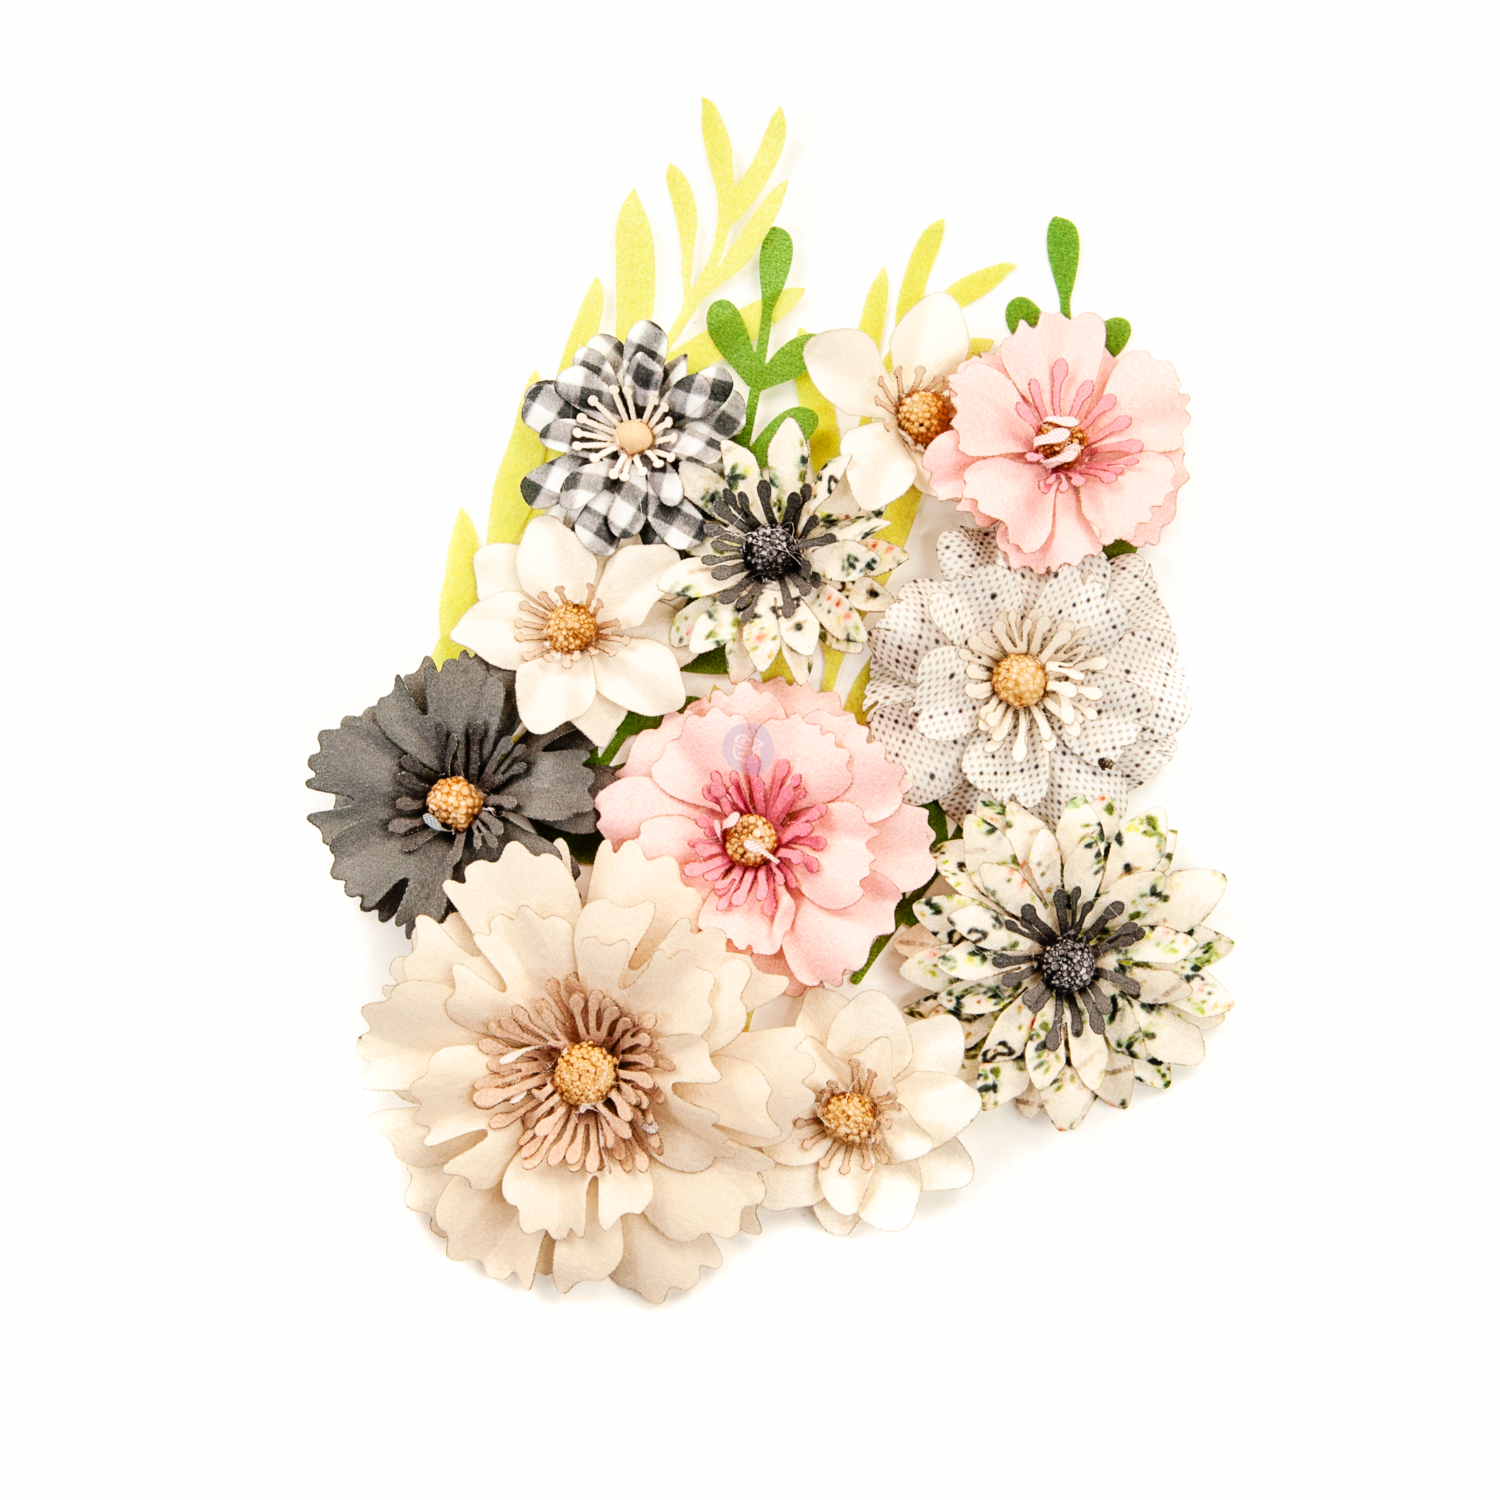 No Other Place - Spring Farmhouse Flowers - Prima